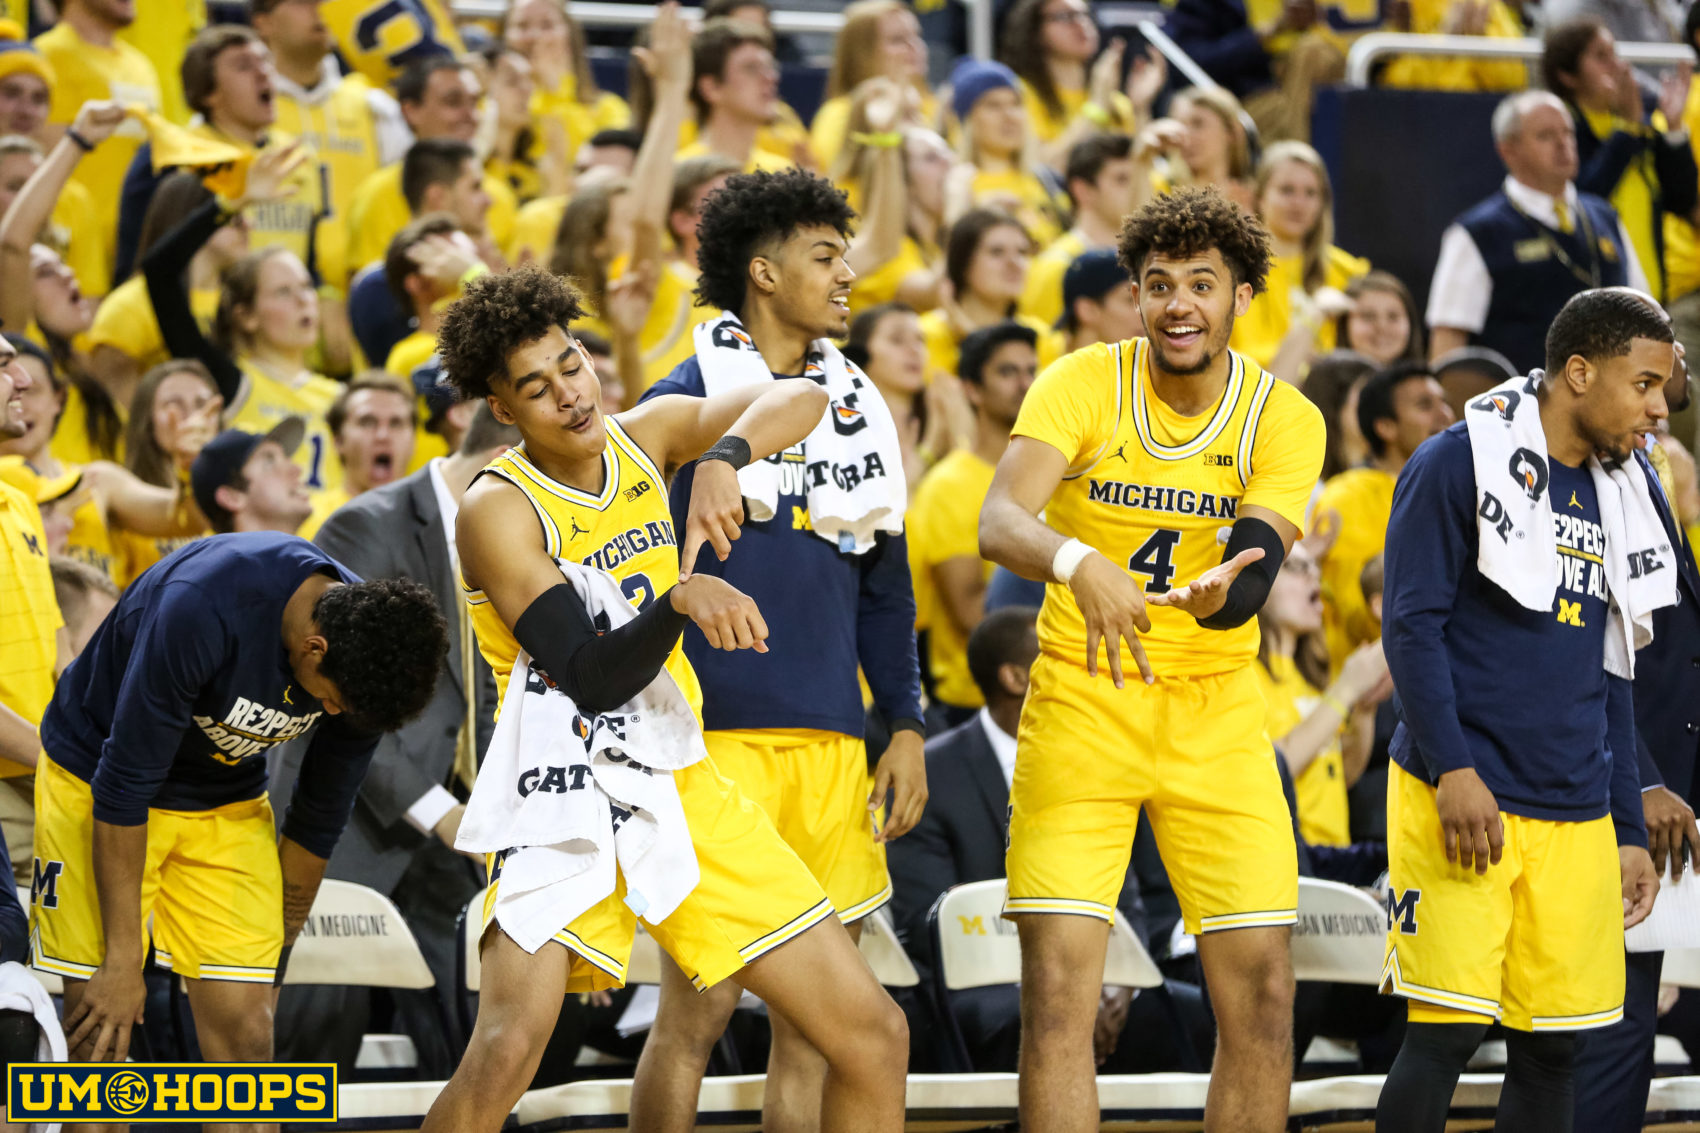 Michigan 74, Ohio State 62-22